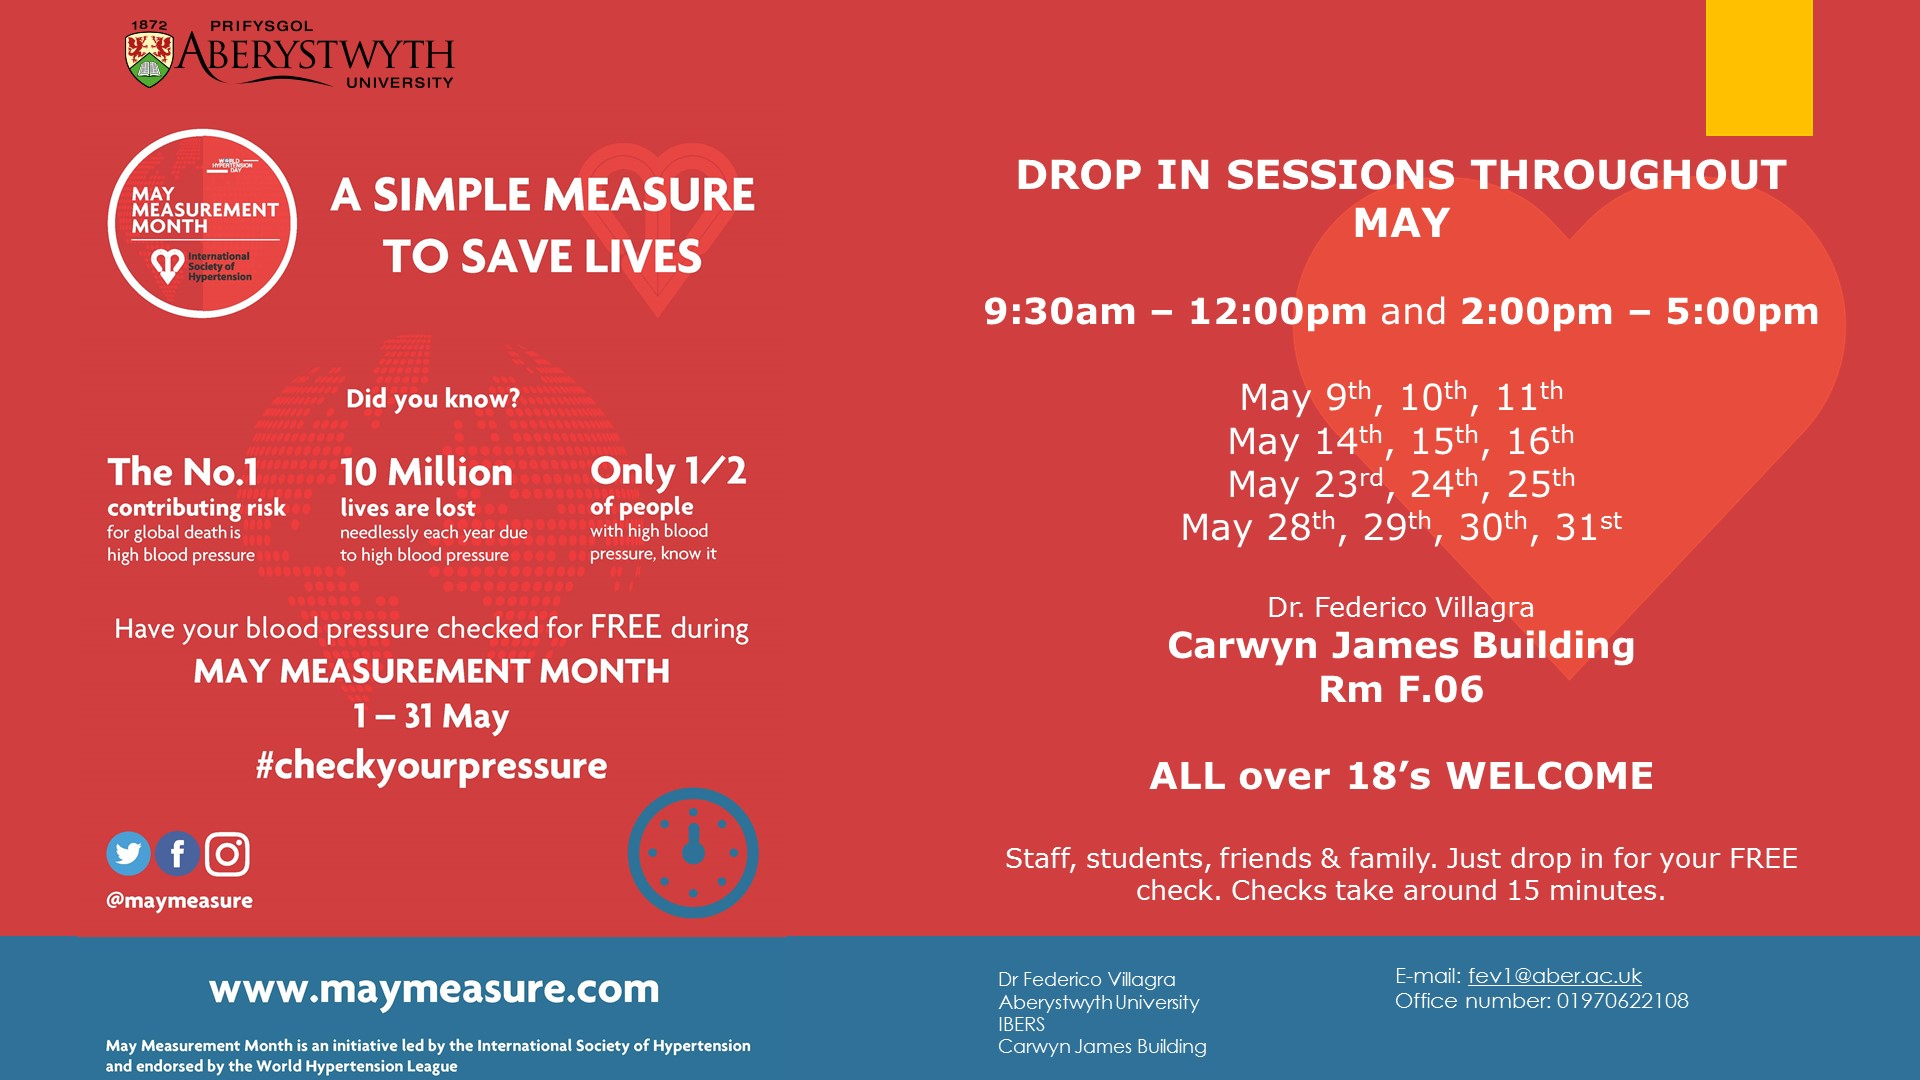 May Measurement Month